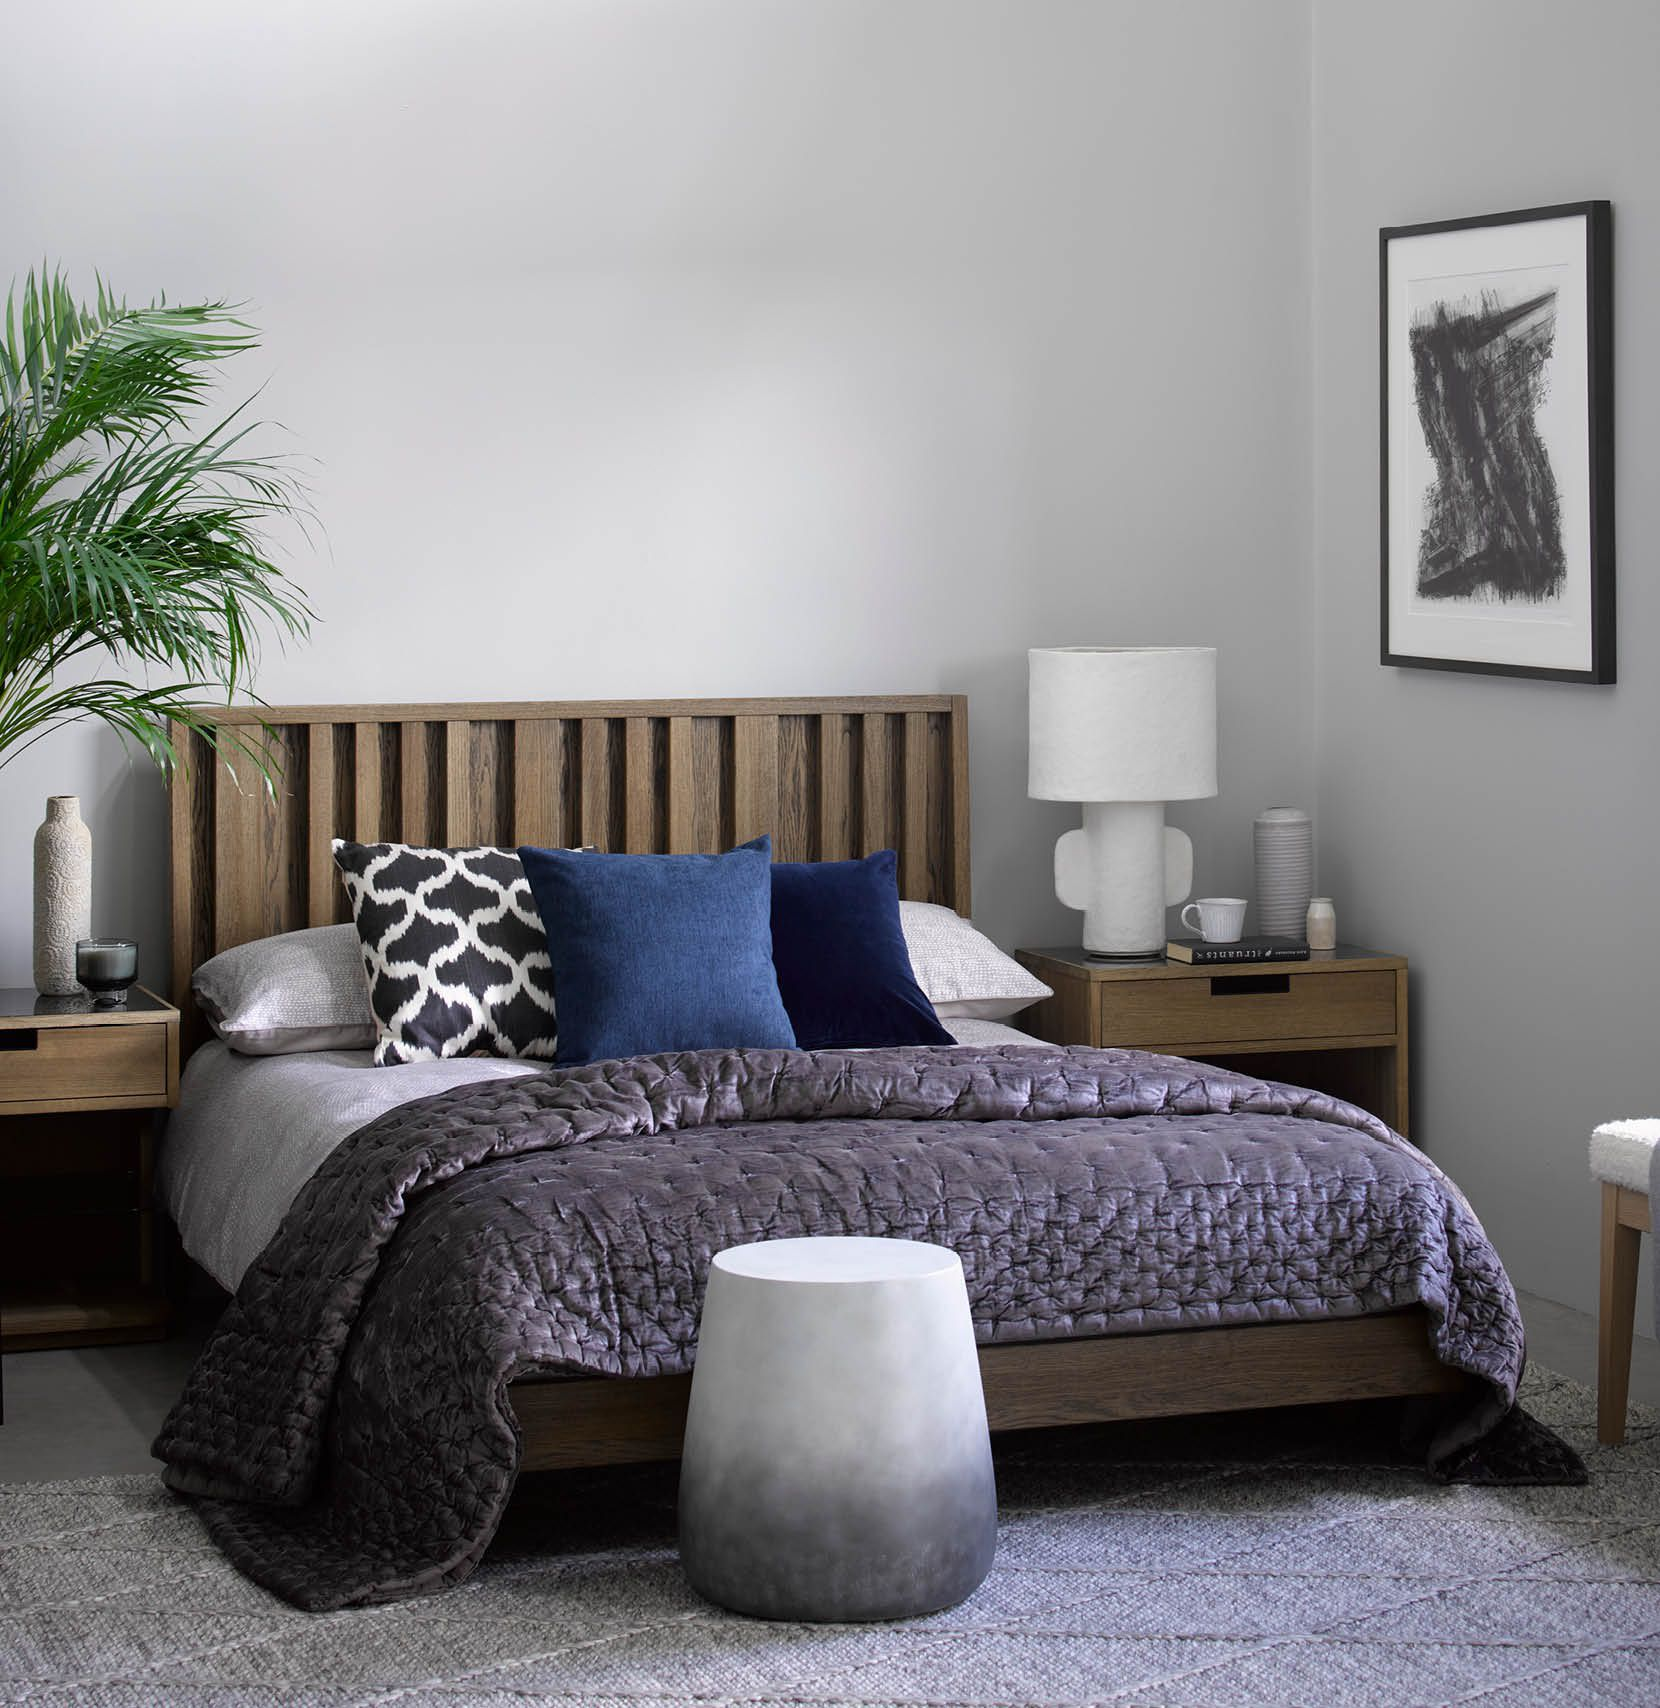 Ravello wooden bed featured in a comptepray tranquil bedroom also featuring Turin bedside tables, Lombard Coffee table and Beamont rug